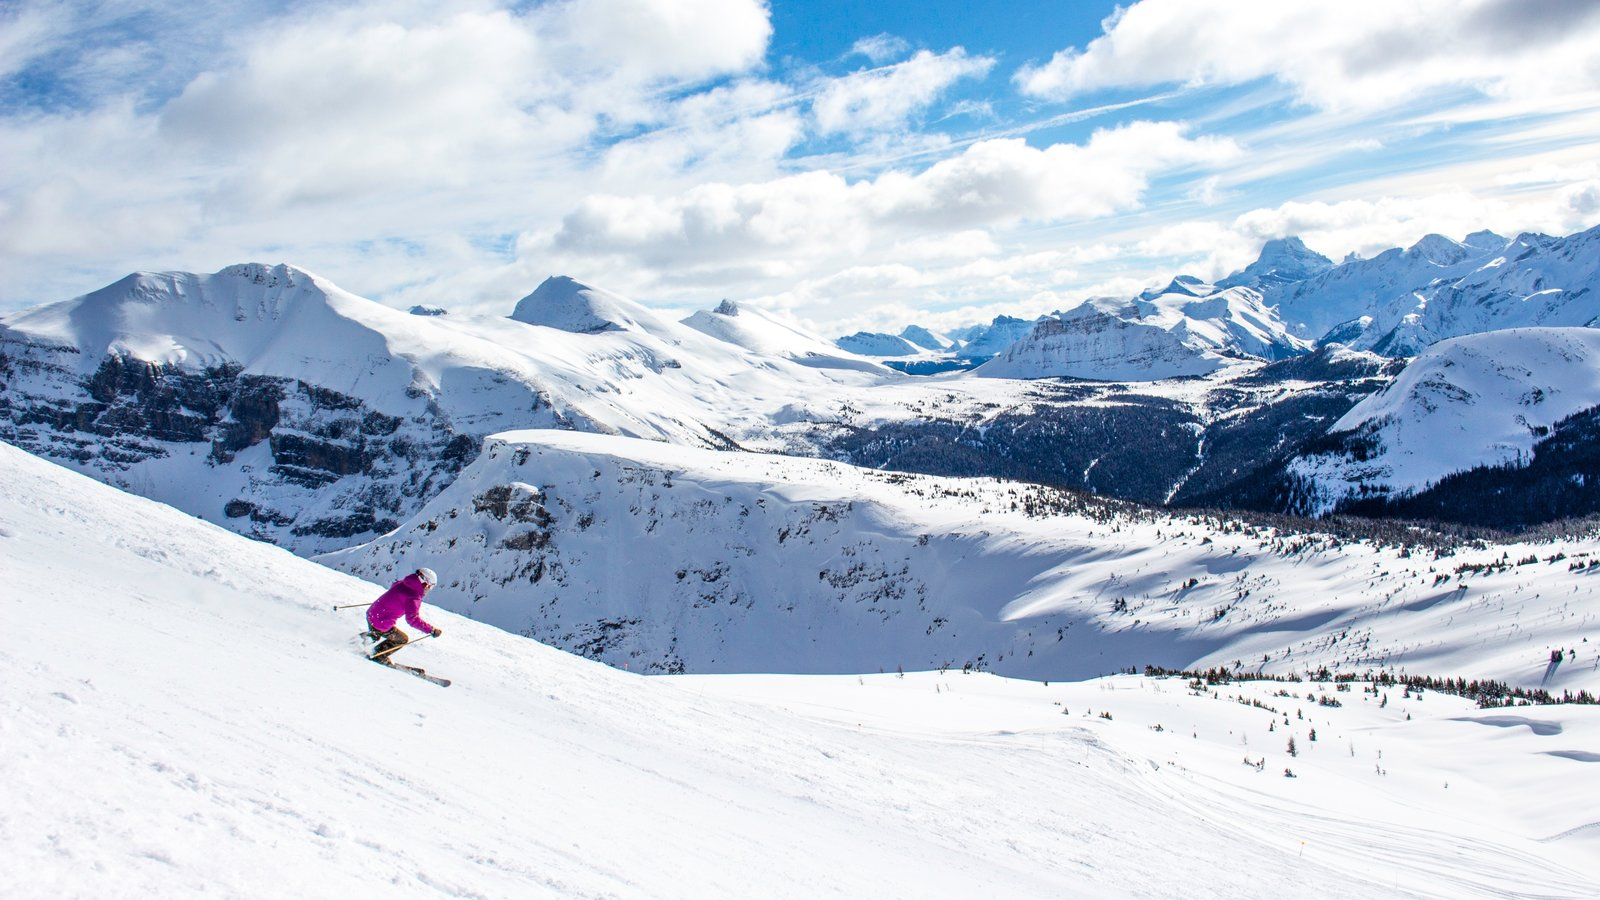 Sunshine Village featuring snow skiing, snow and mountains